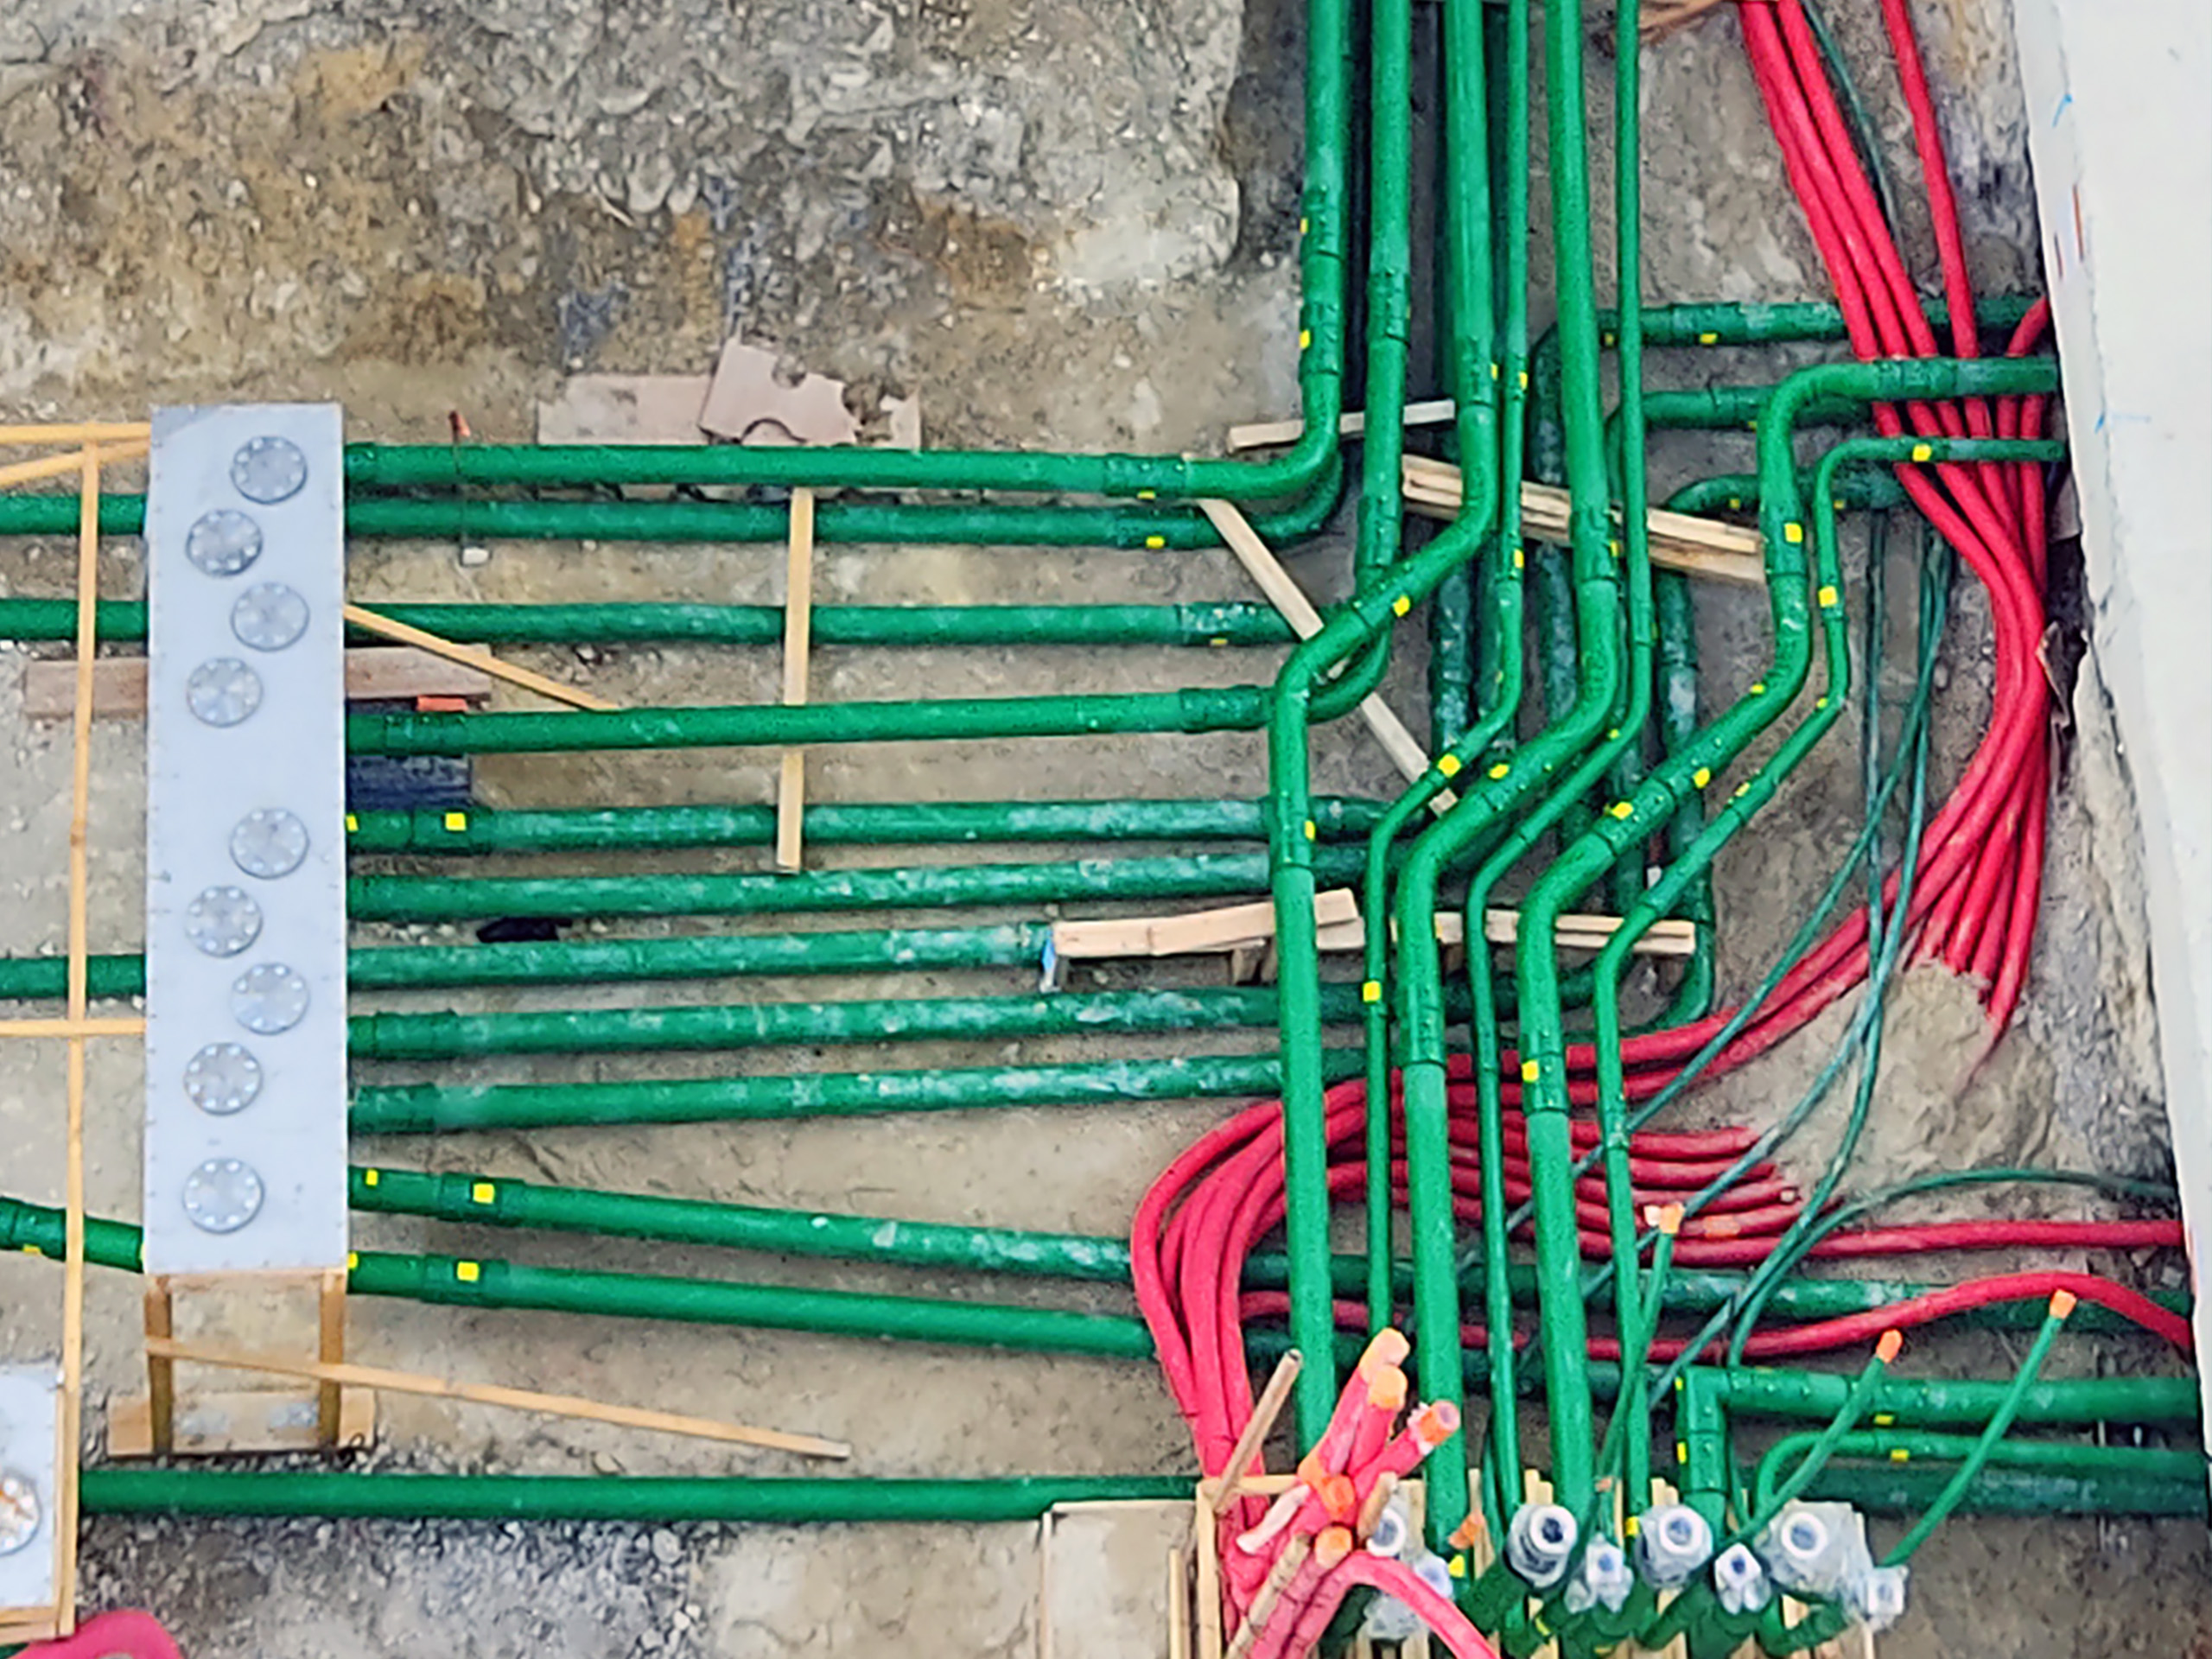 Conductive KPS piping is electrostatically safe, preventing potential static build-up